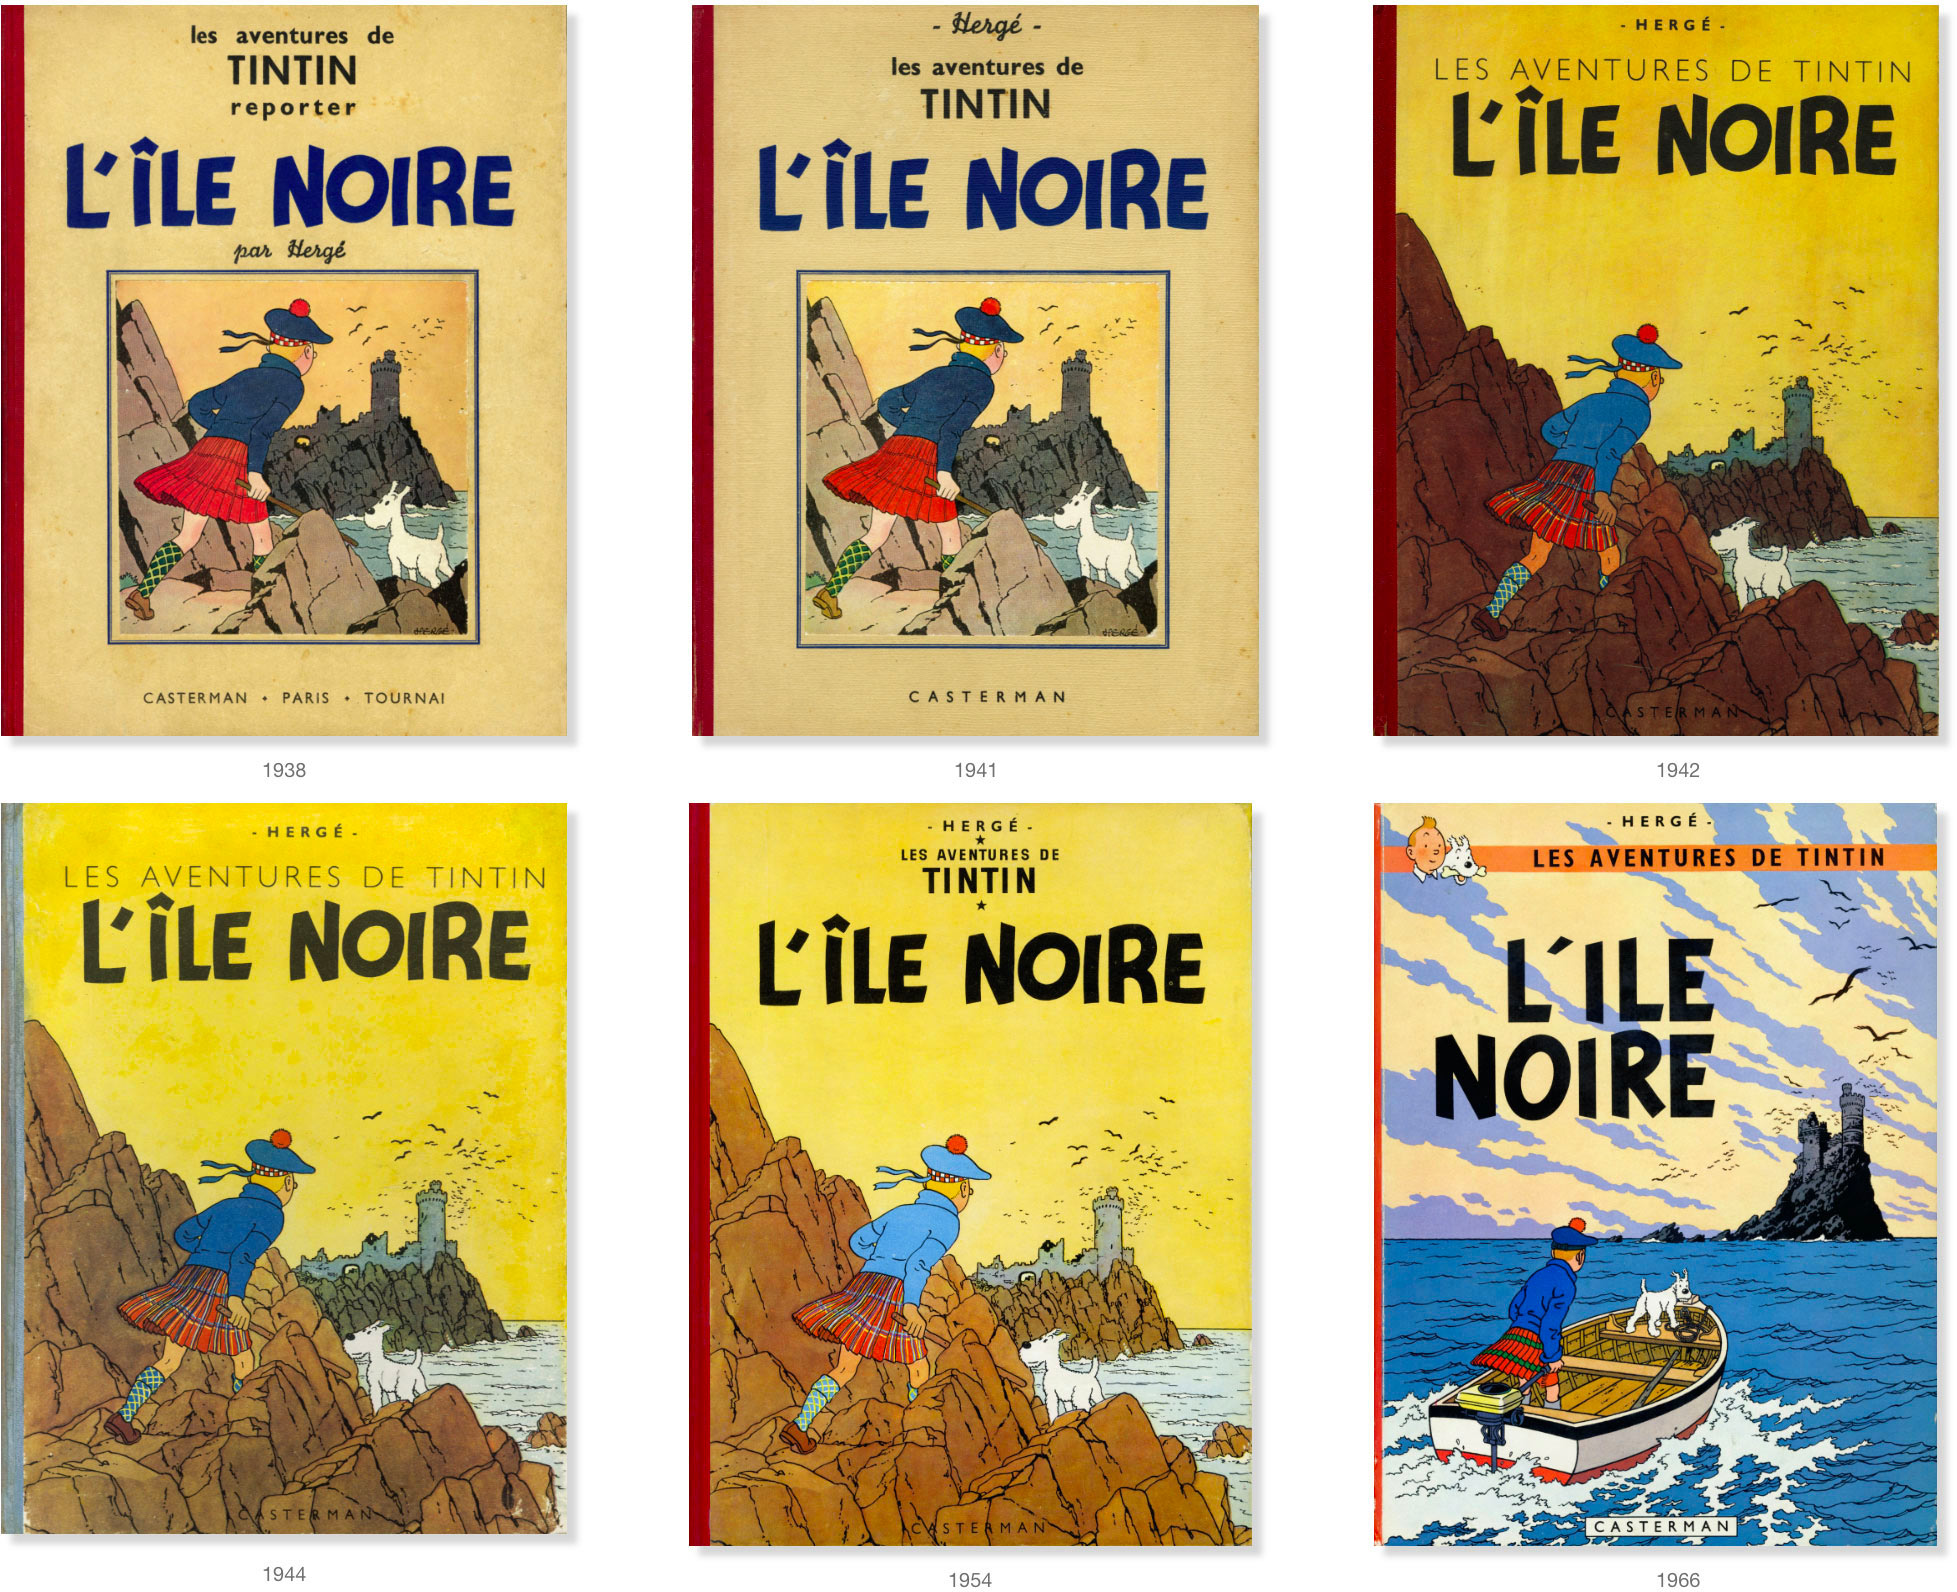 The Black Island covers in French